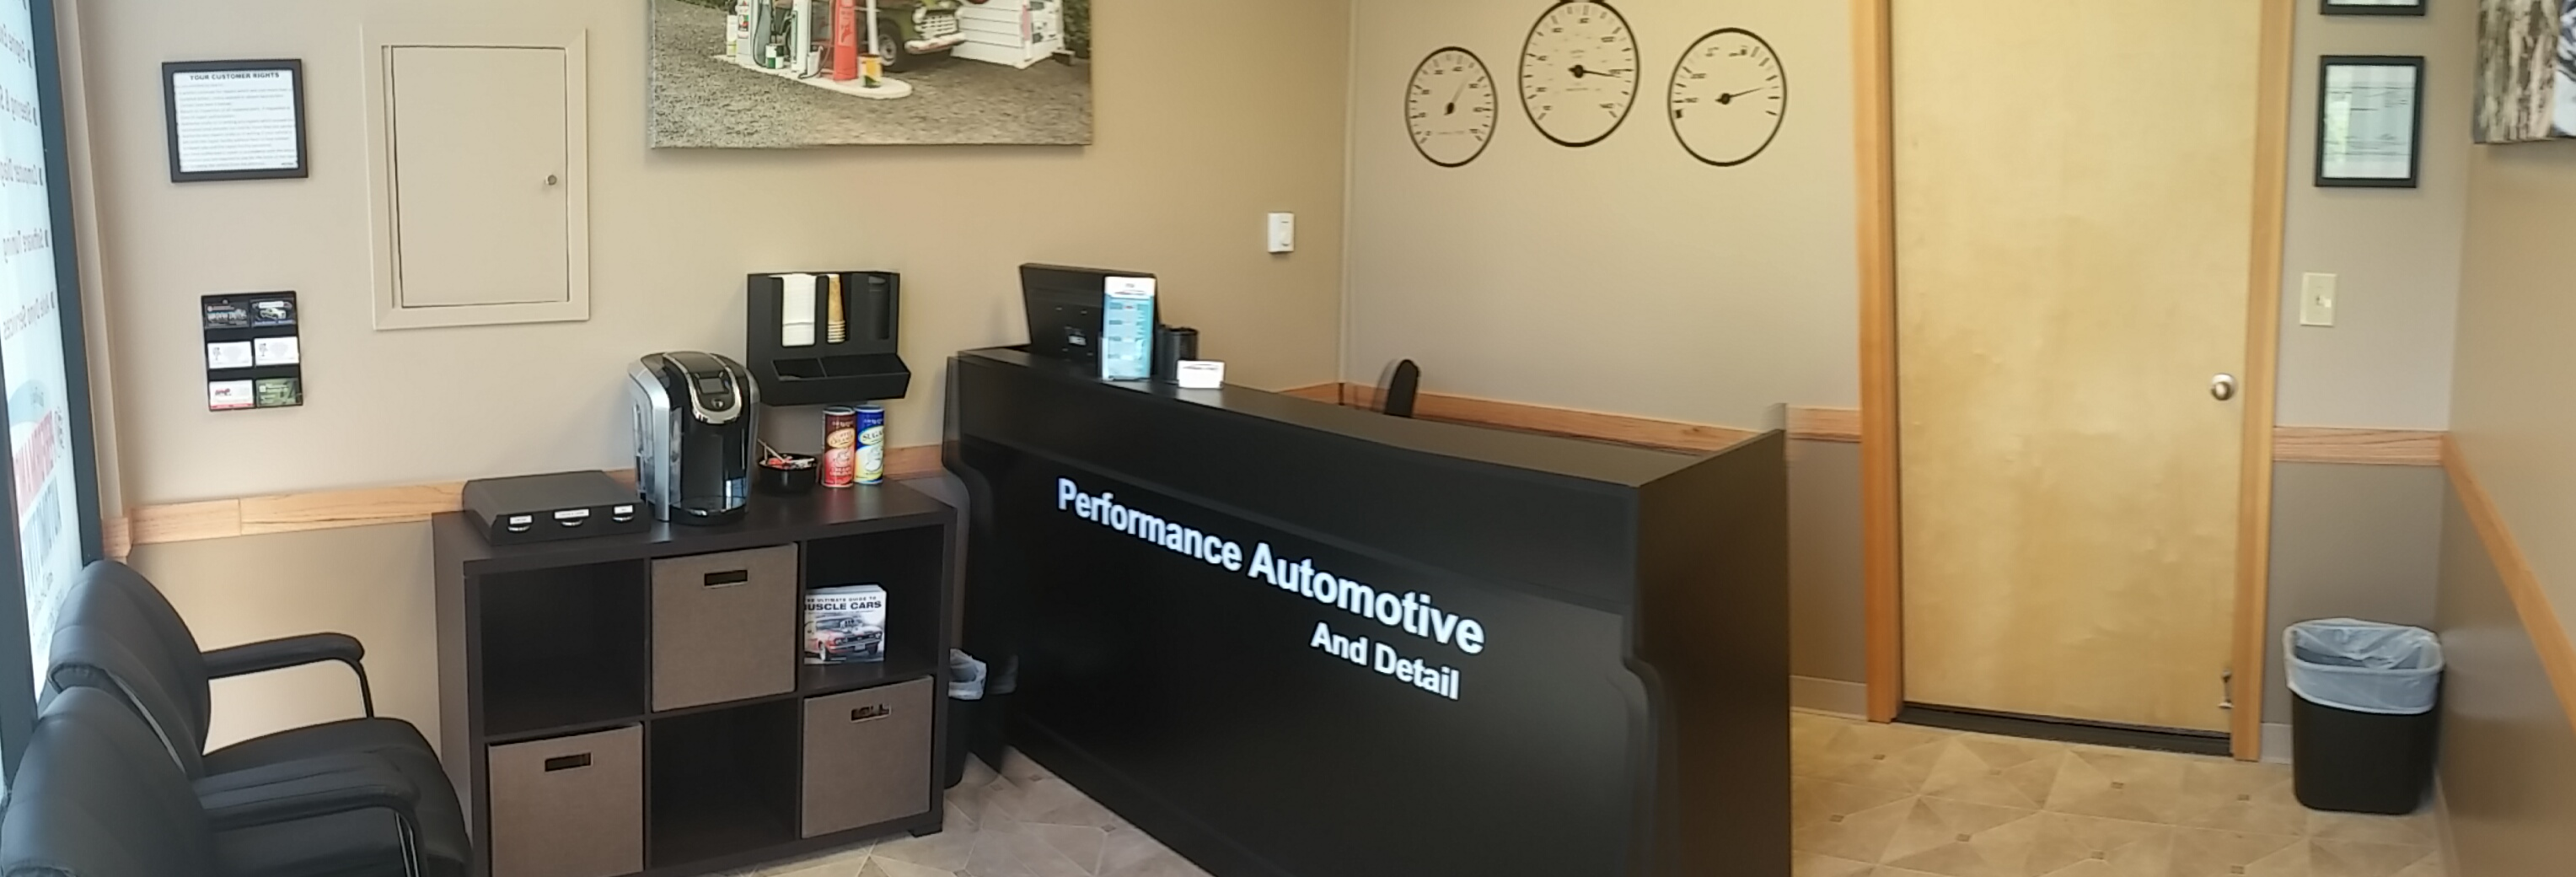 Performance Automotive And Detail image 1